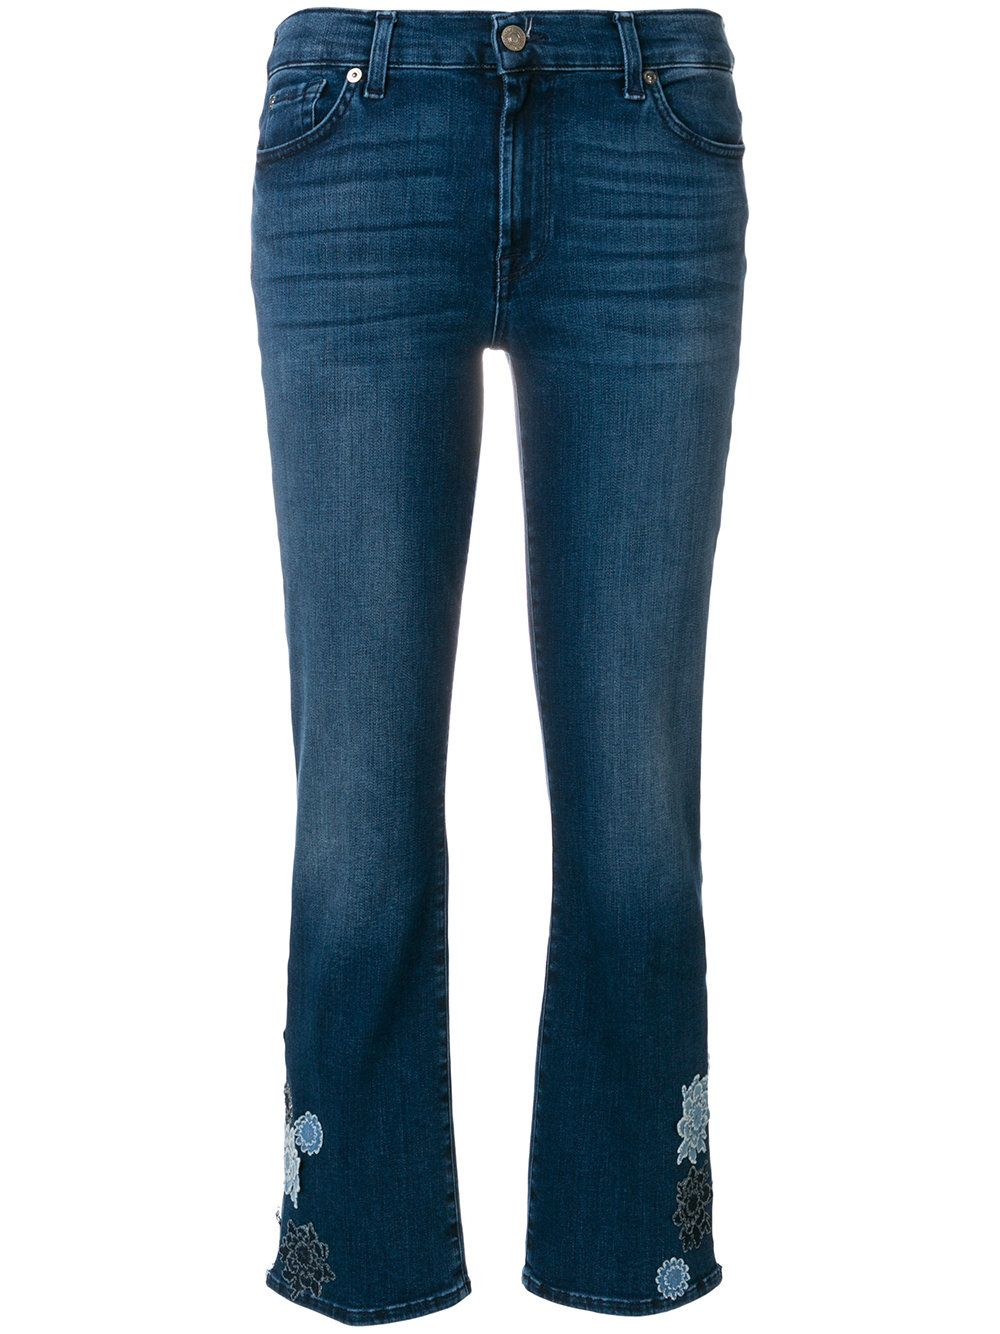 Cheap Sale For Cheap Clearance Footlocker Pictures 7 For All Mankind flower patch cropped jeans Low Price Fee Shipping Sale Online paykCz6W